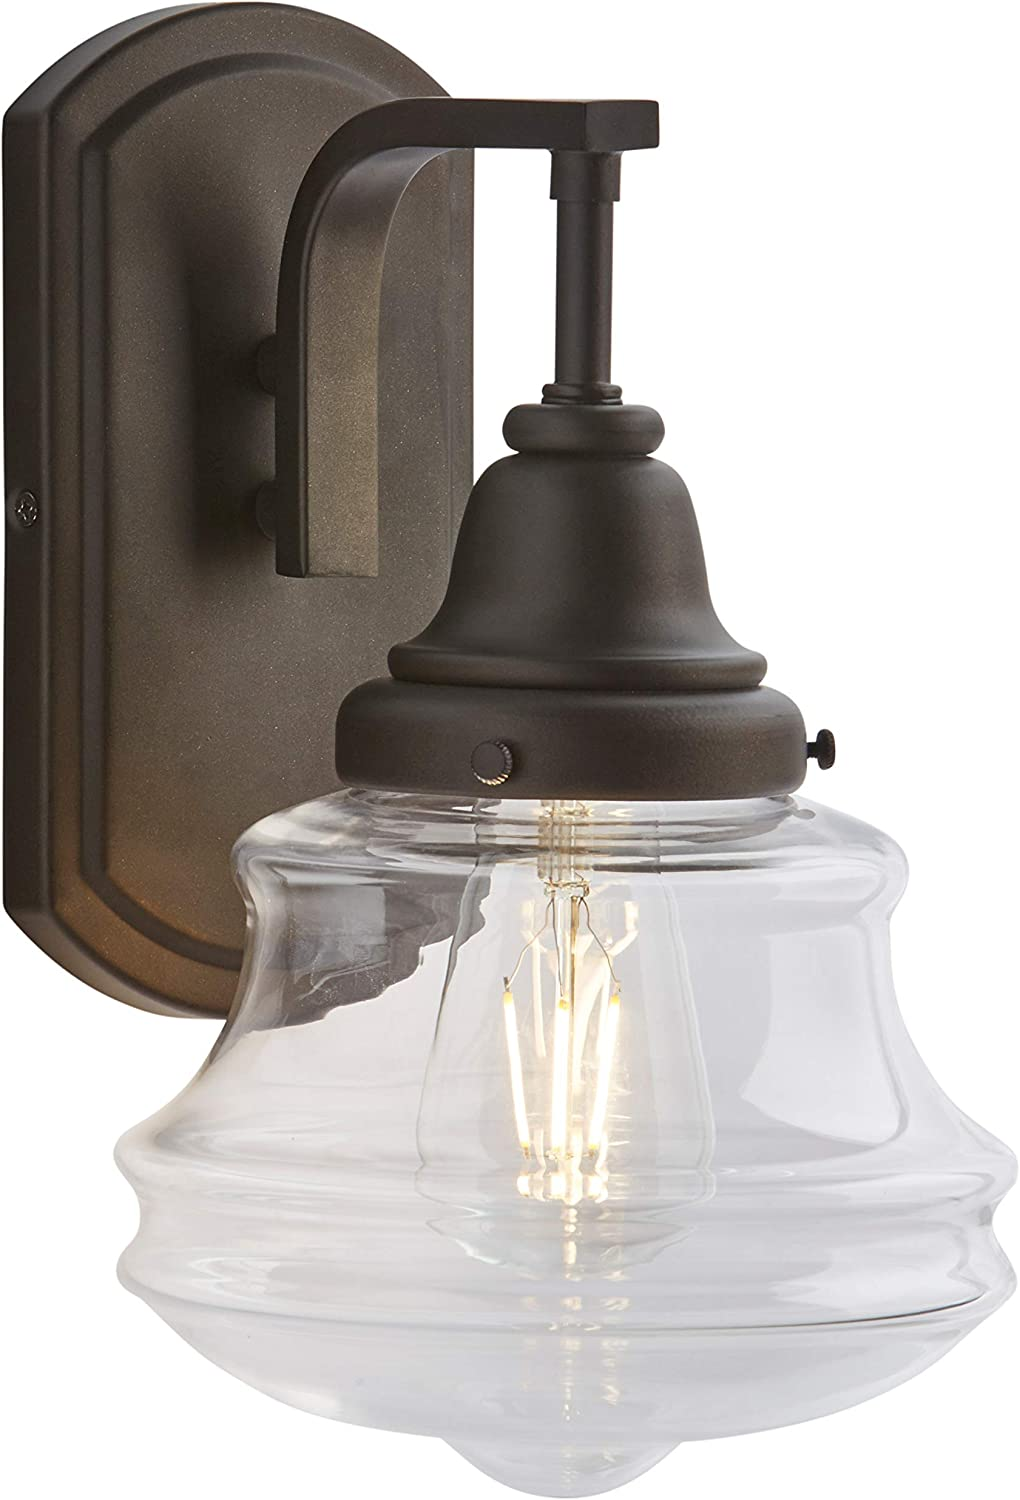 Antique Bronze 7 x 7 x 11.5 Inches Stone /& Beam Vintage Indoor Outdoor Wall Sconce with Light Bulb And Clear Glass Shade